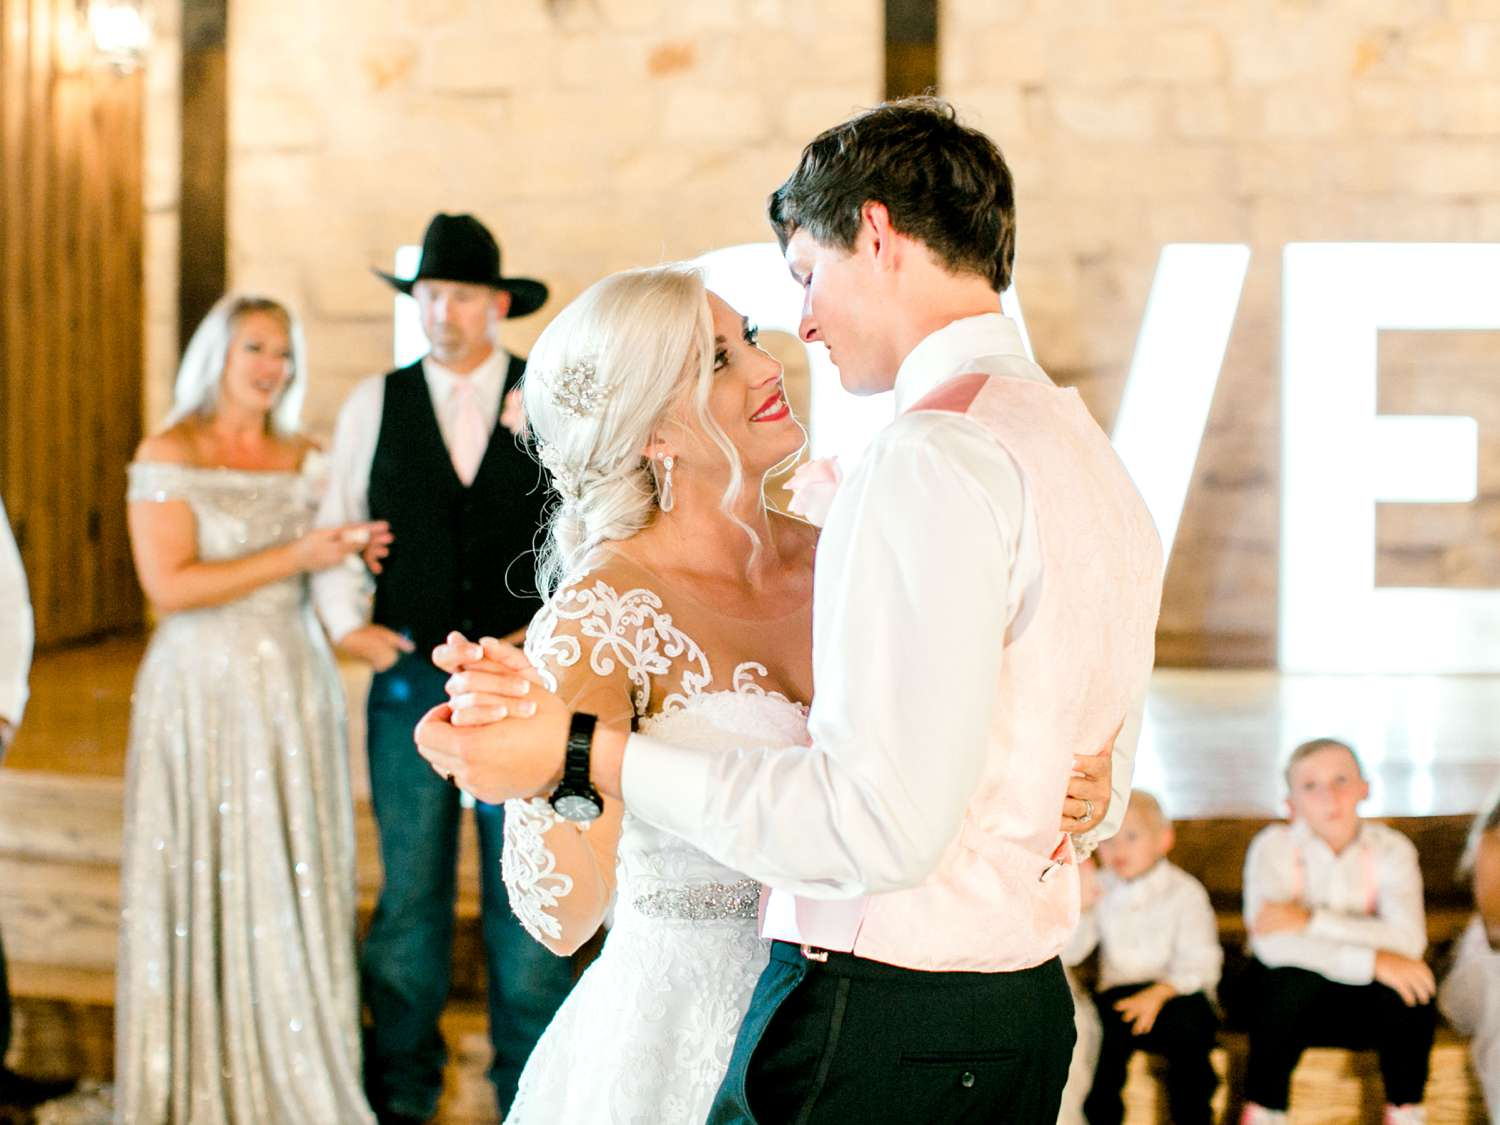 JESSICA+LYLE+NEEL+THE_SPRINGS_EVENTS_WEDDING_OKLAHOMA_ALLEEJ_PHOTOGRAPHER_0120.jpg